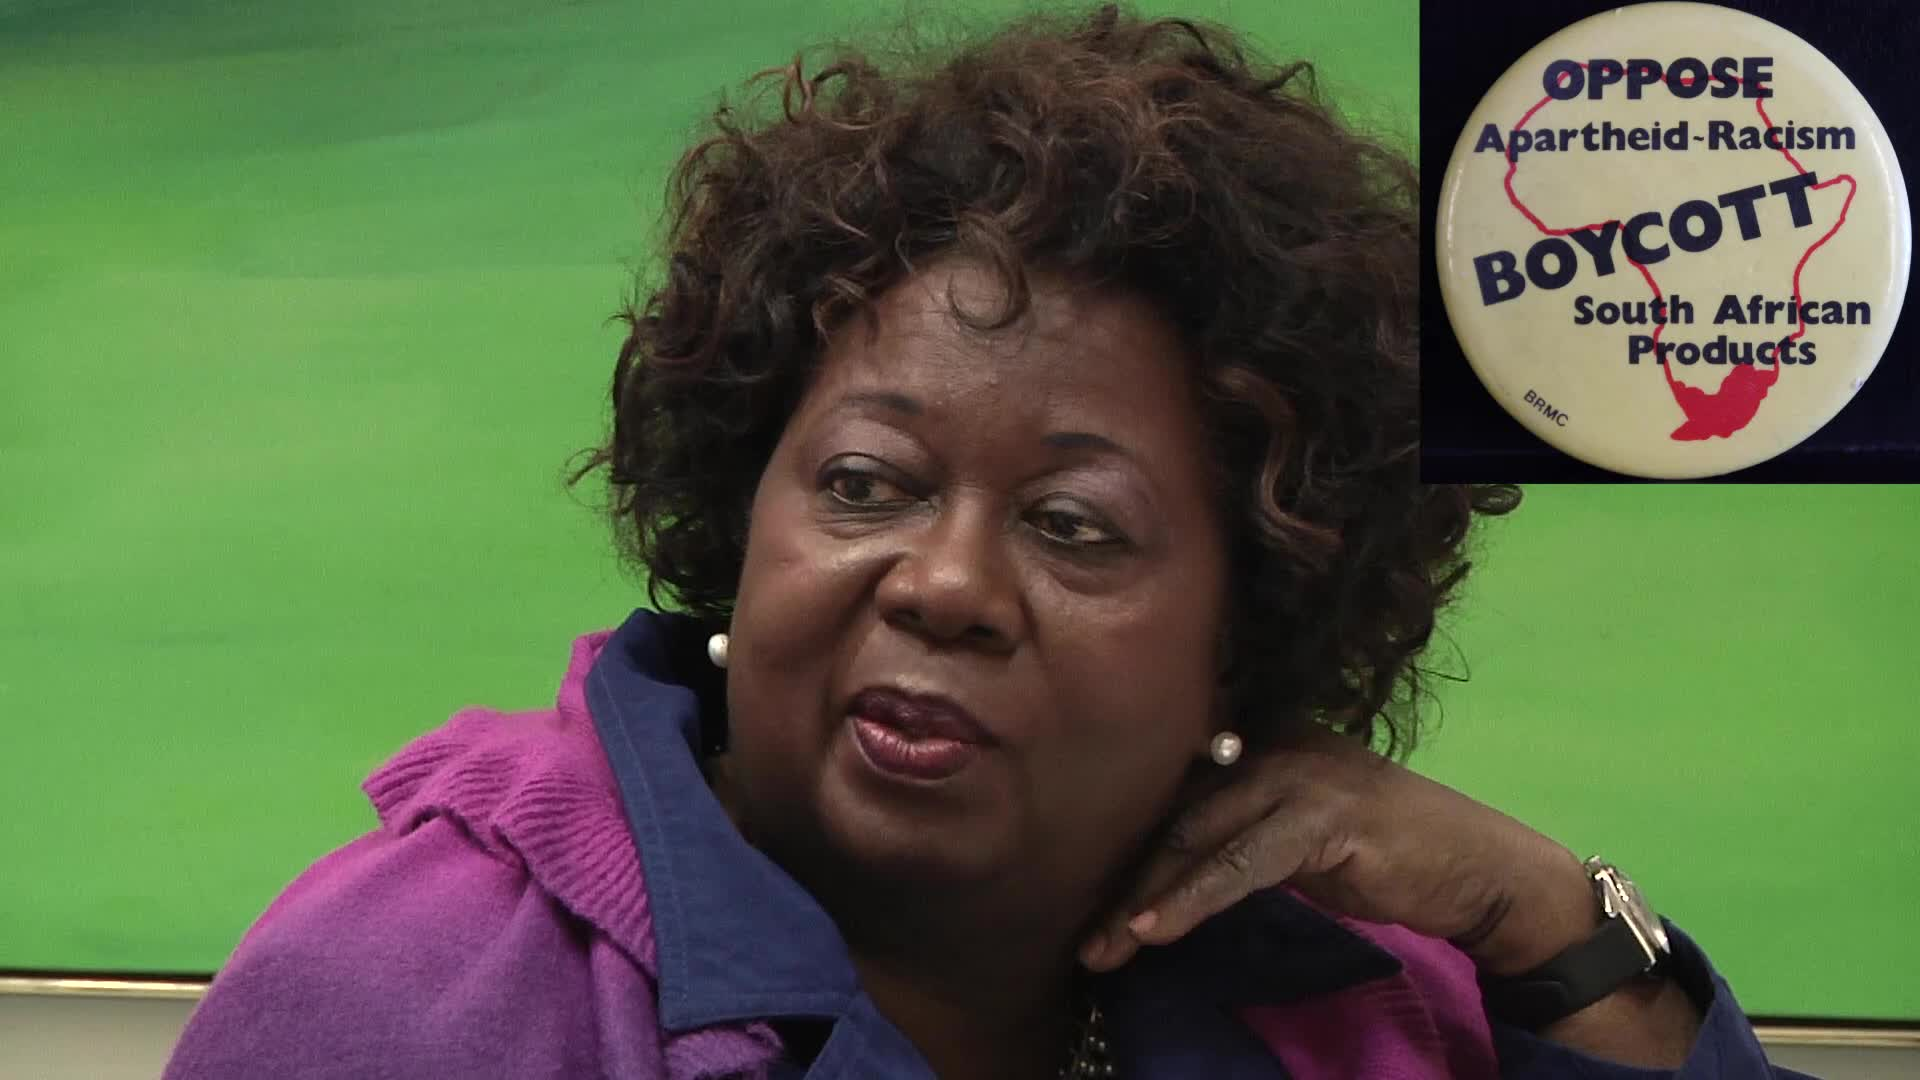 Jean Augustine interview: Anti-apartheid buttons